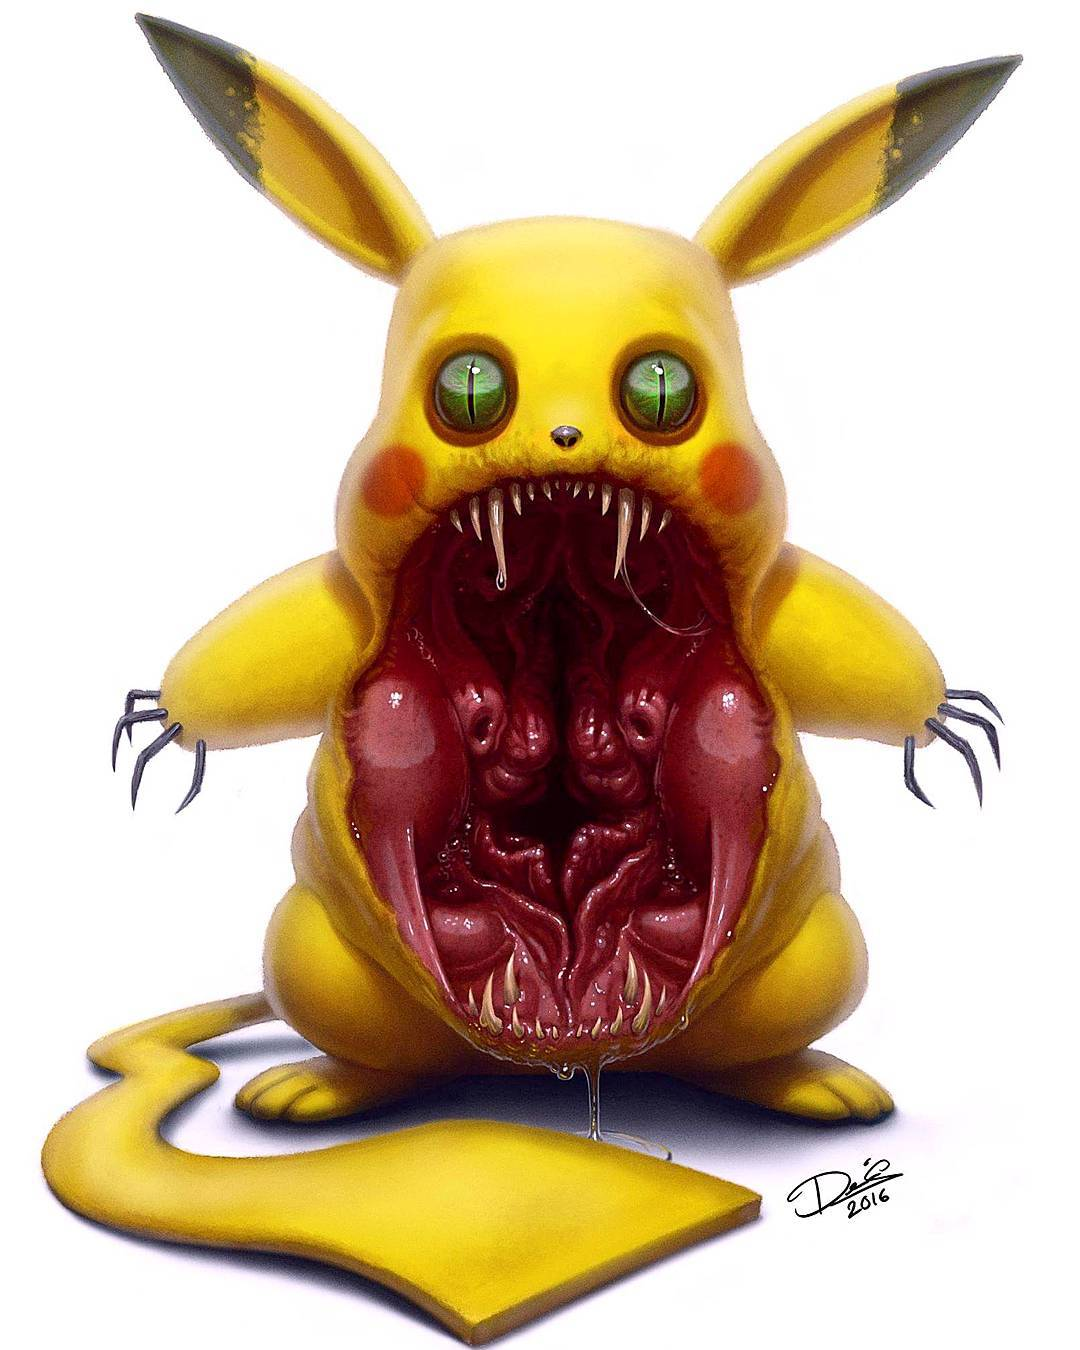 Dennis Carlsson Turns Popular Cartoon Characters Into Terrifying Monsters